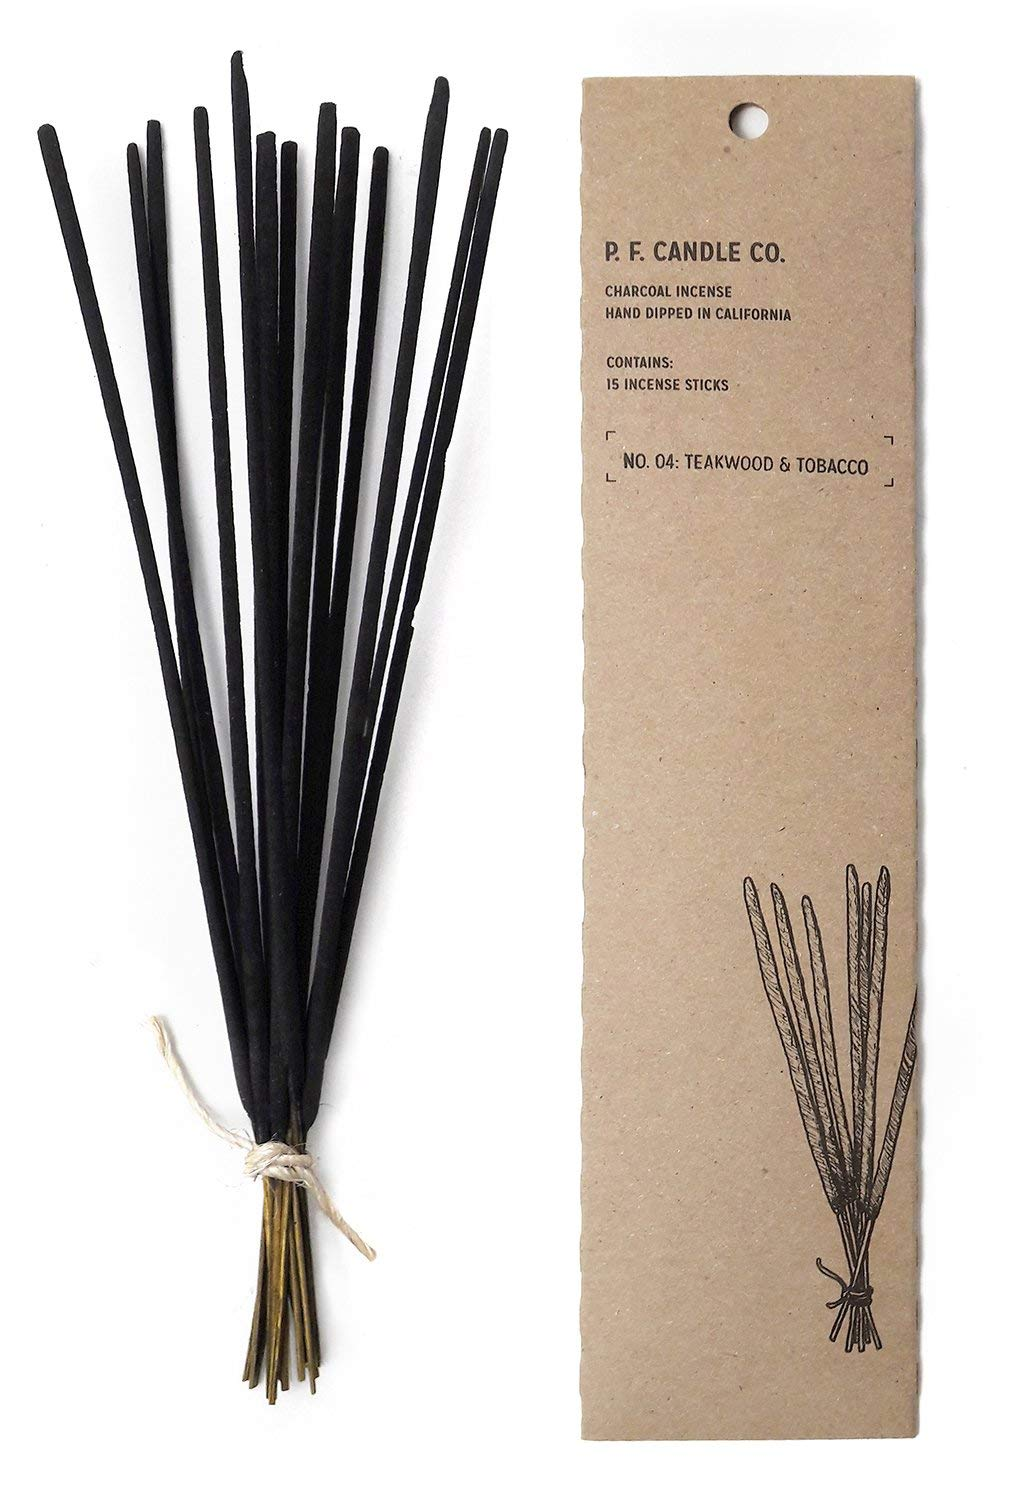 P.F. Candle Co. - No. 04: Teakwood & Tobacco Incense (2-Pack)